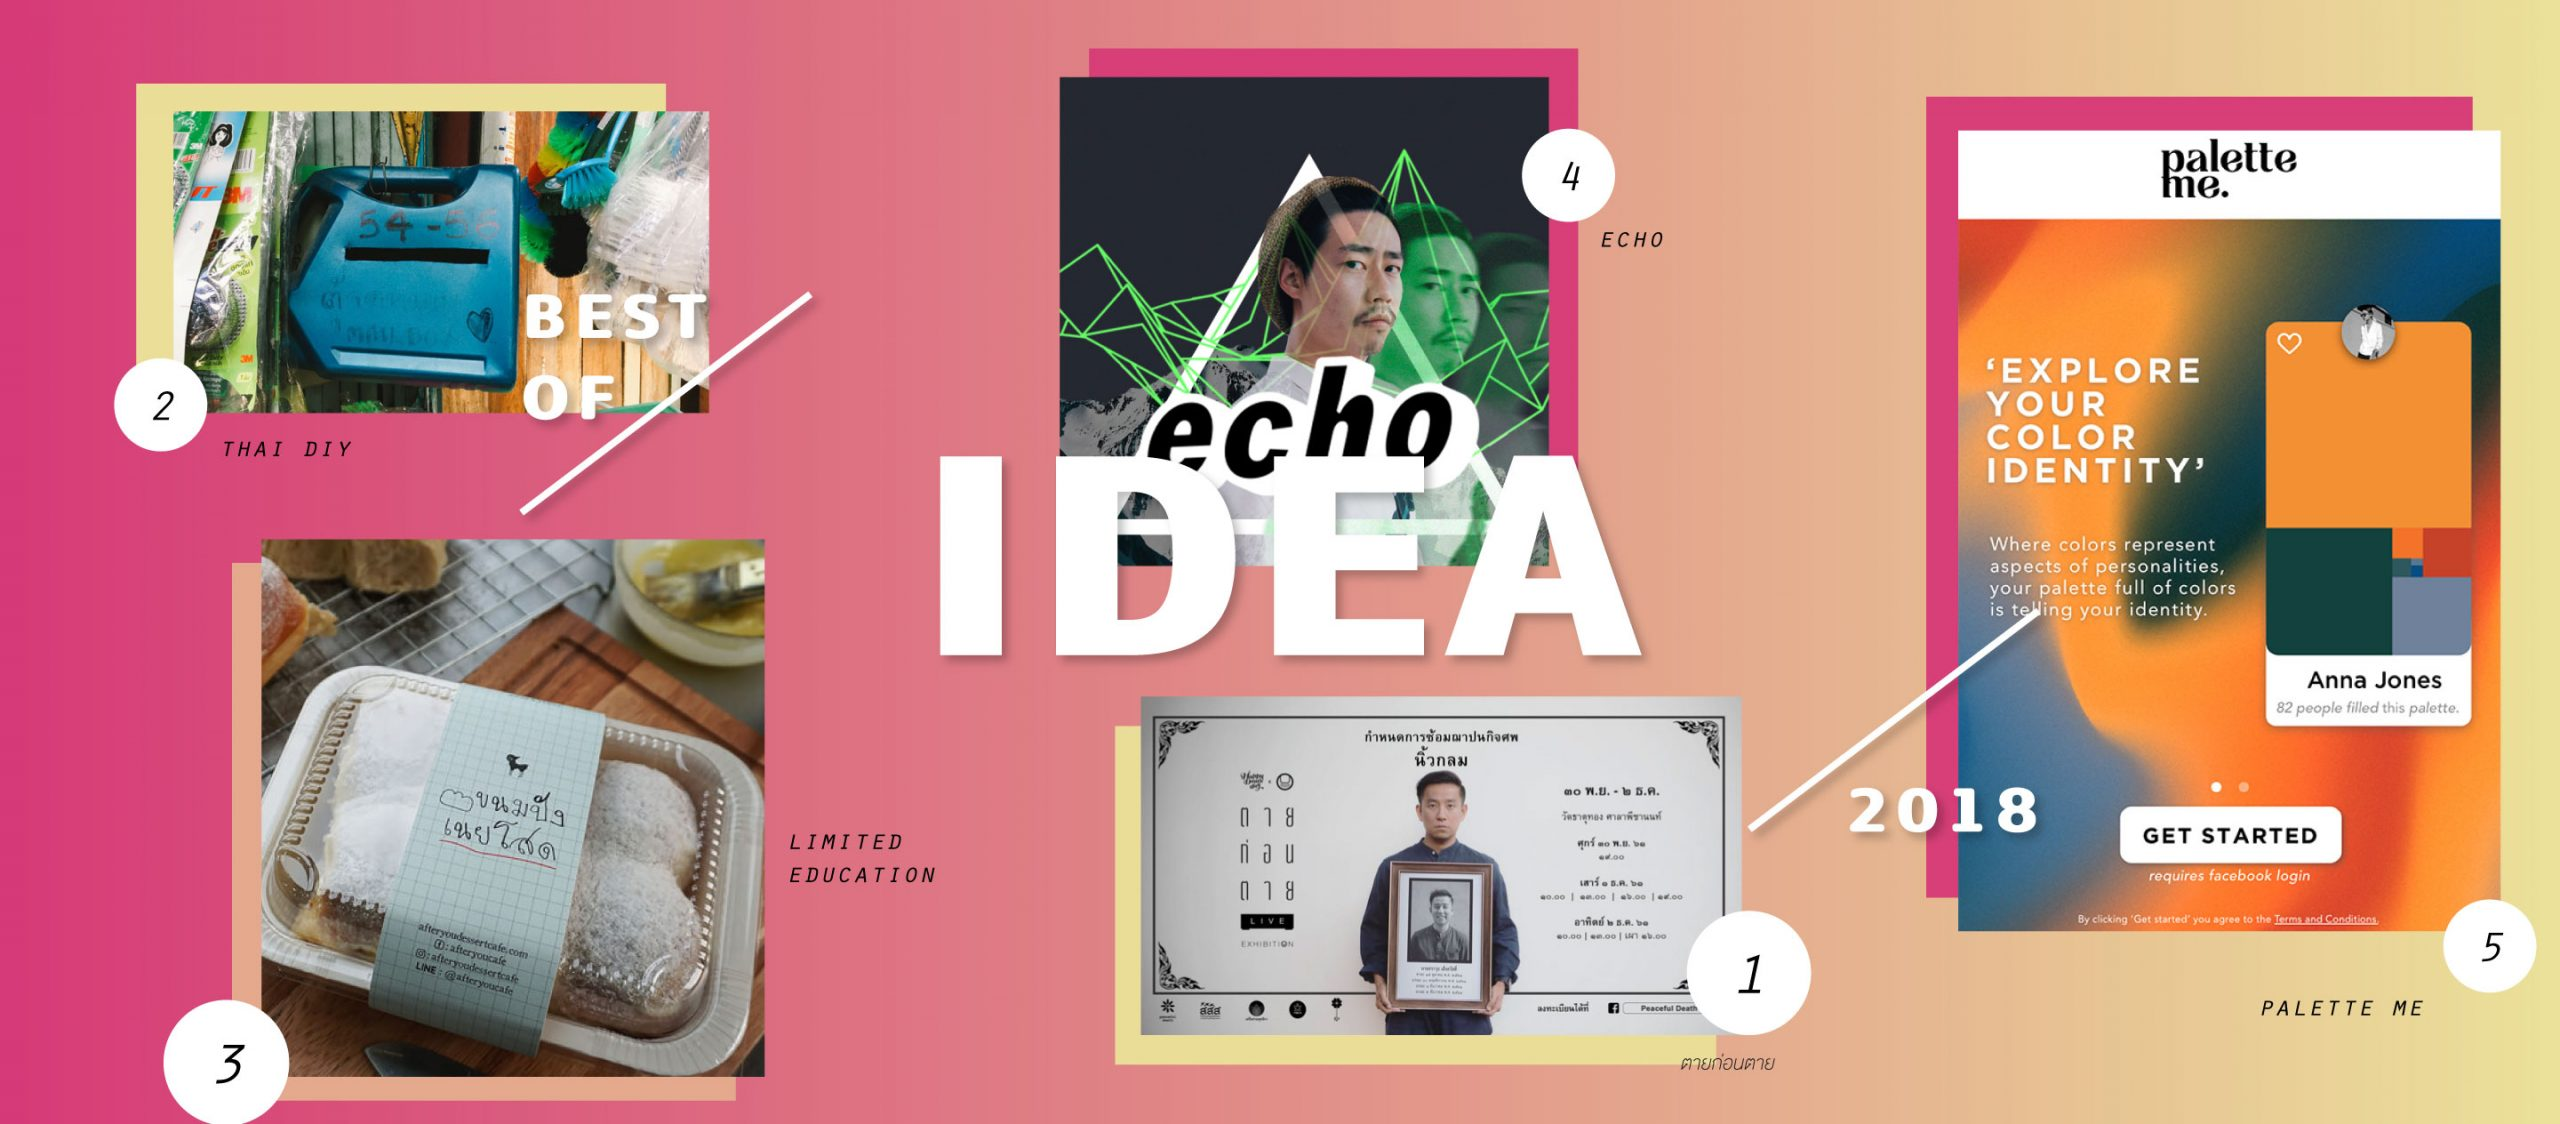 best of a day online : Idea